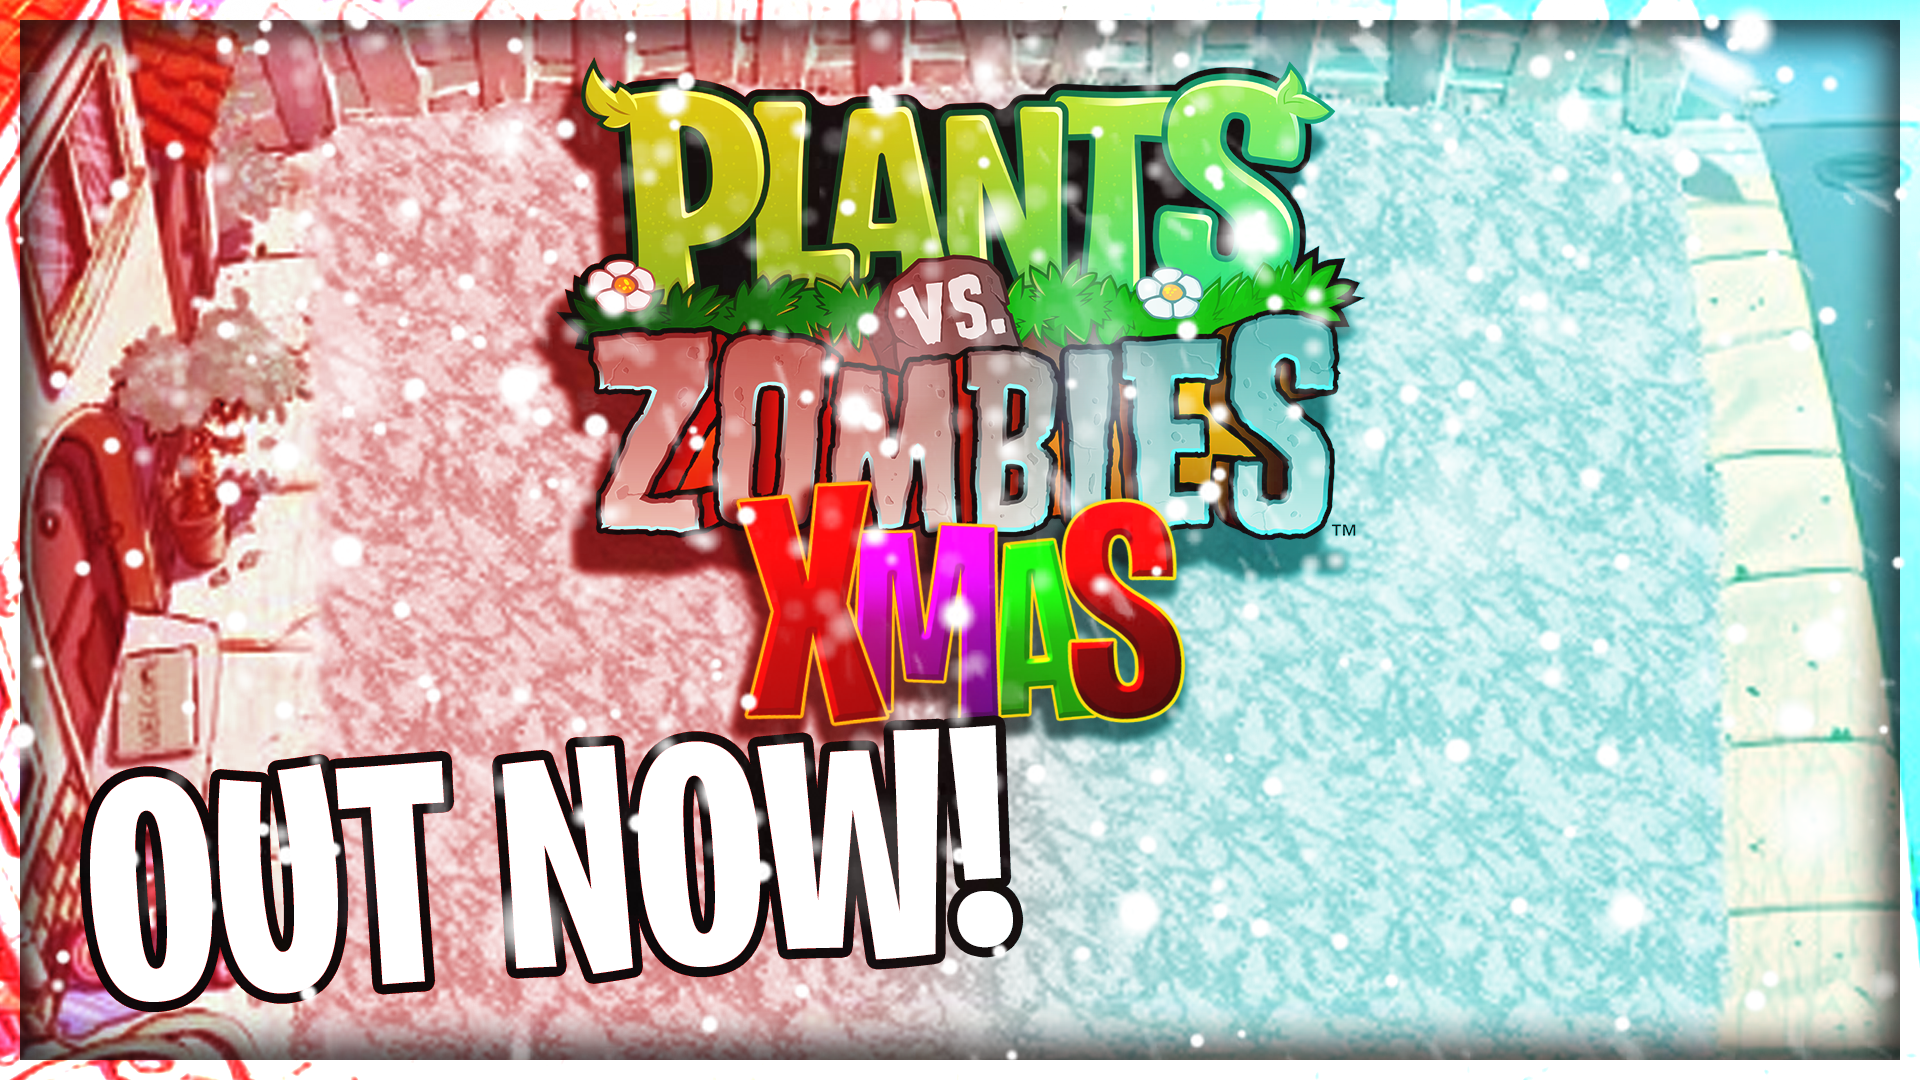 pvzxmasmodoutnow 1 image - Plants vs Zombies Christmas Mod (FULL